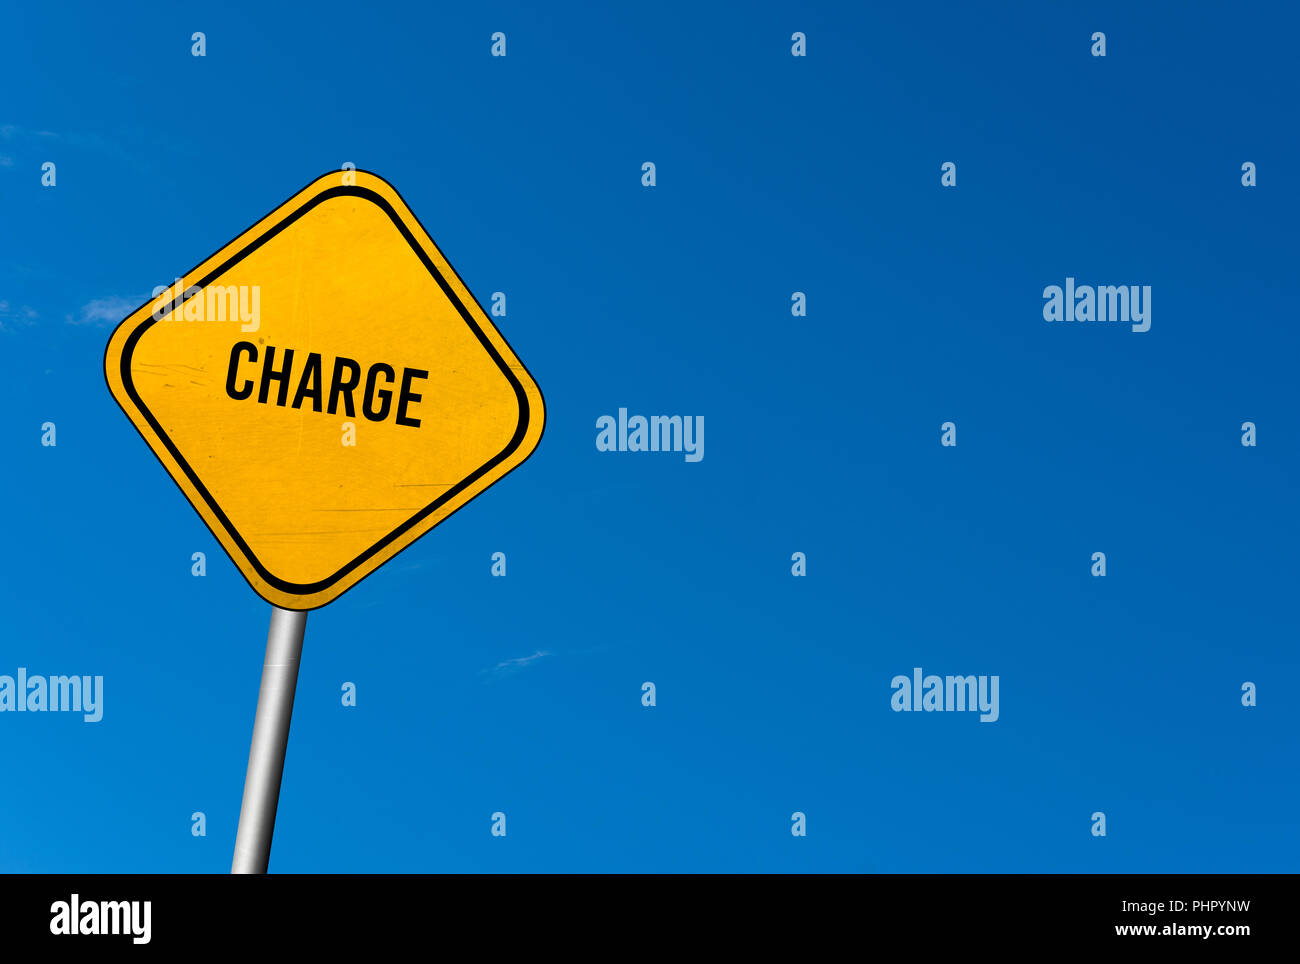 charge - yellow sign with blue sky - Stock Image